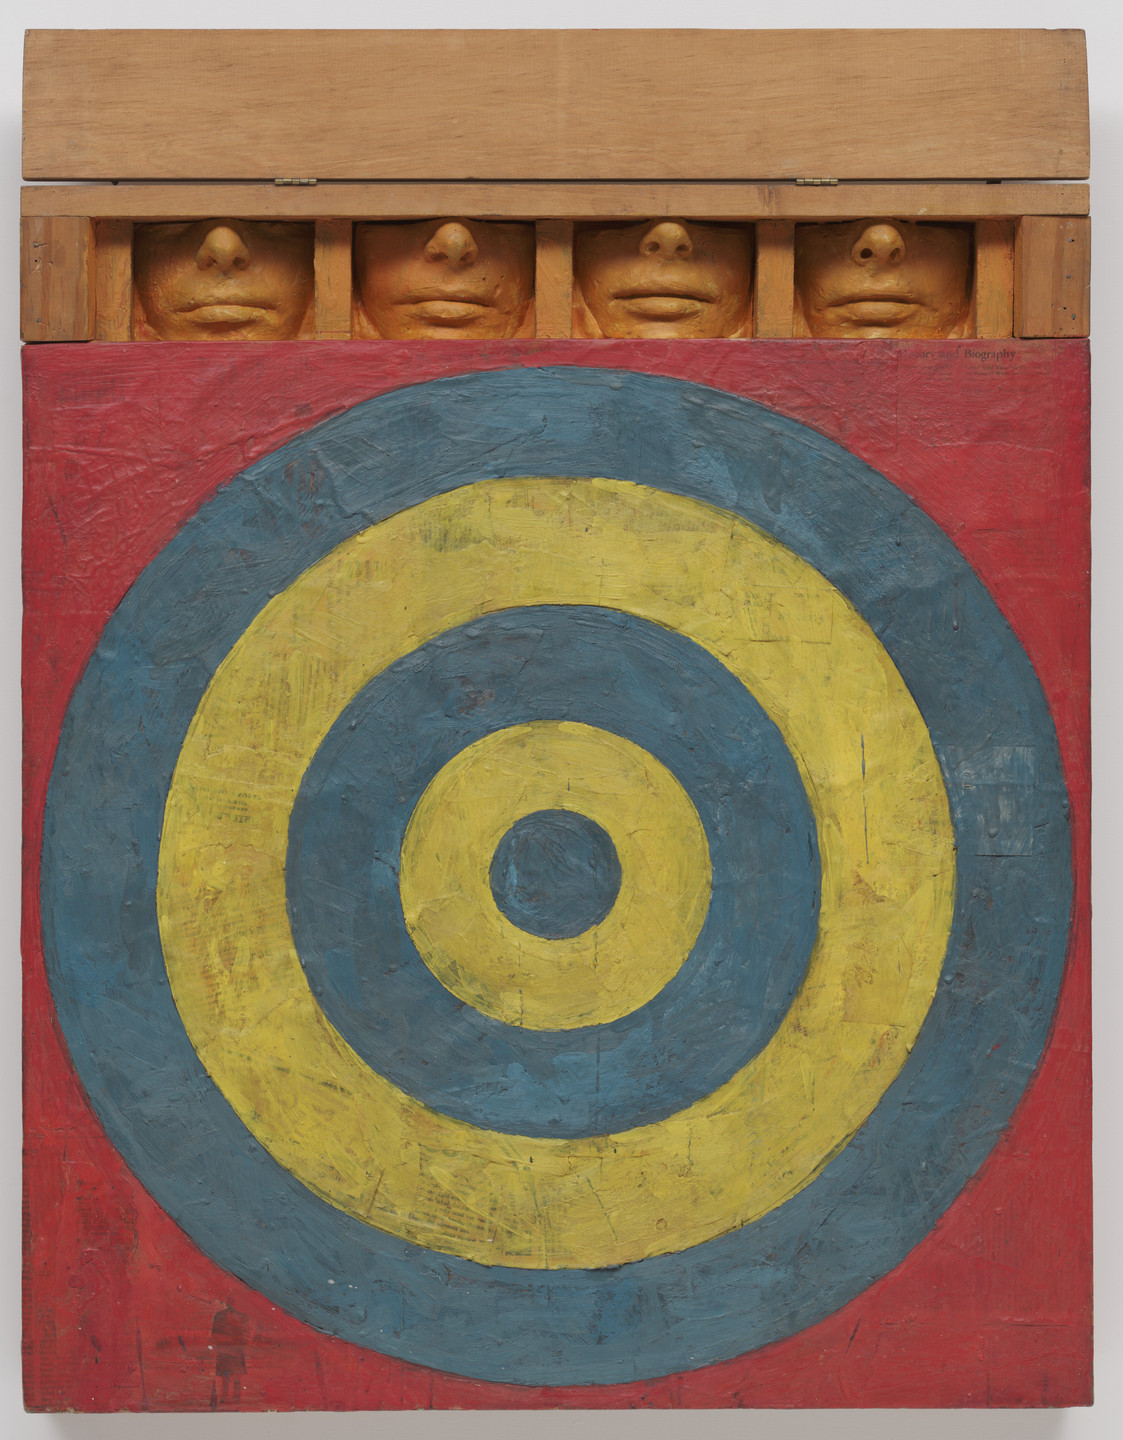 Jasper Johns. Target with Four Faces. 1955